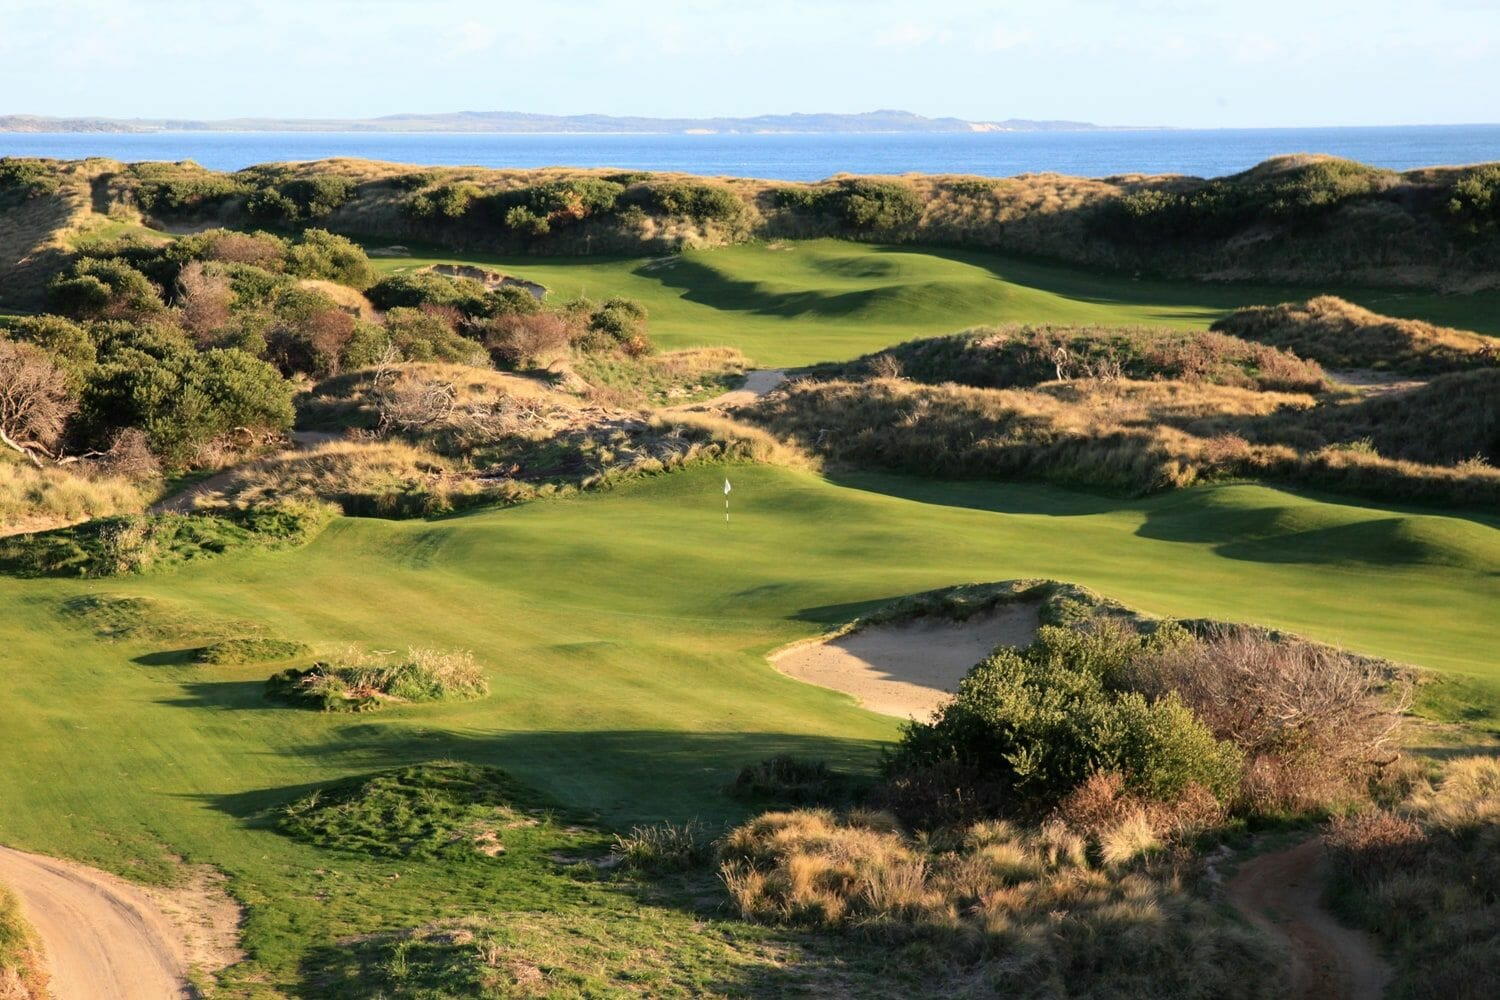 Undulating links golf course amid large sand dunes